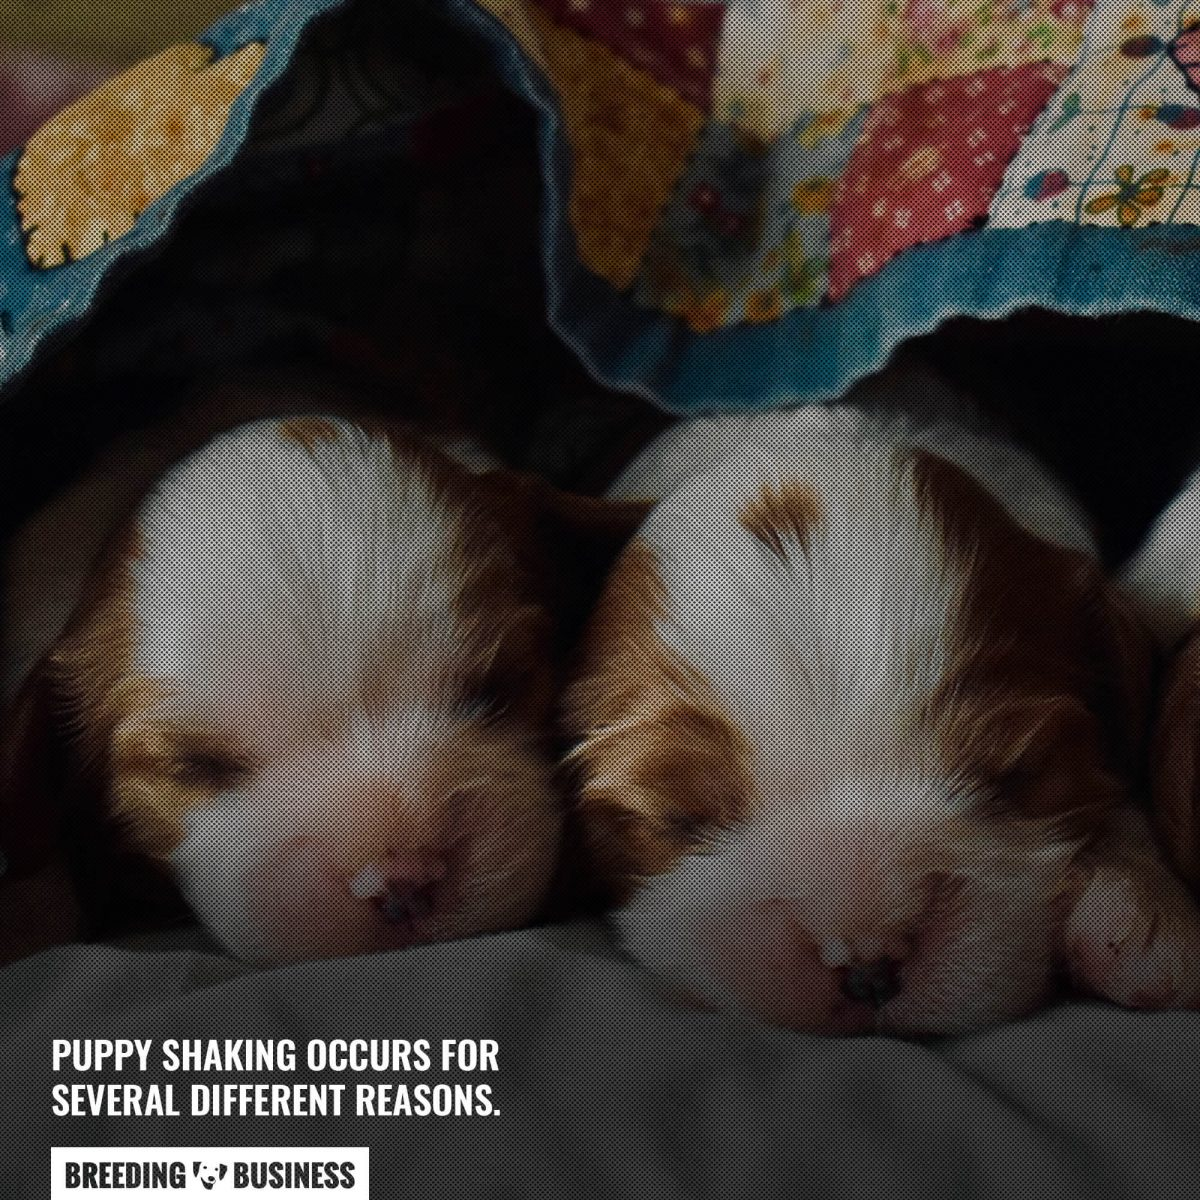 reasons for puppy shaking